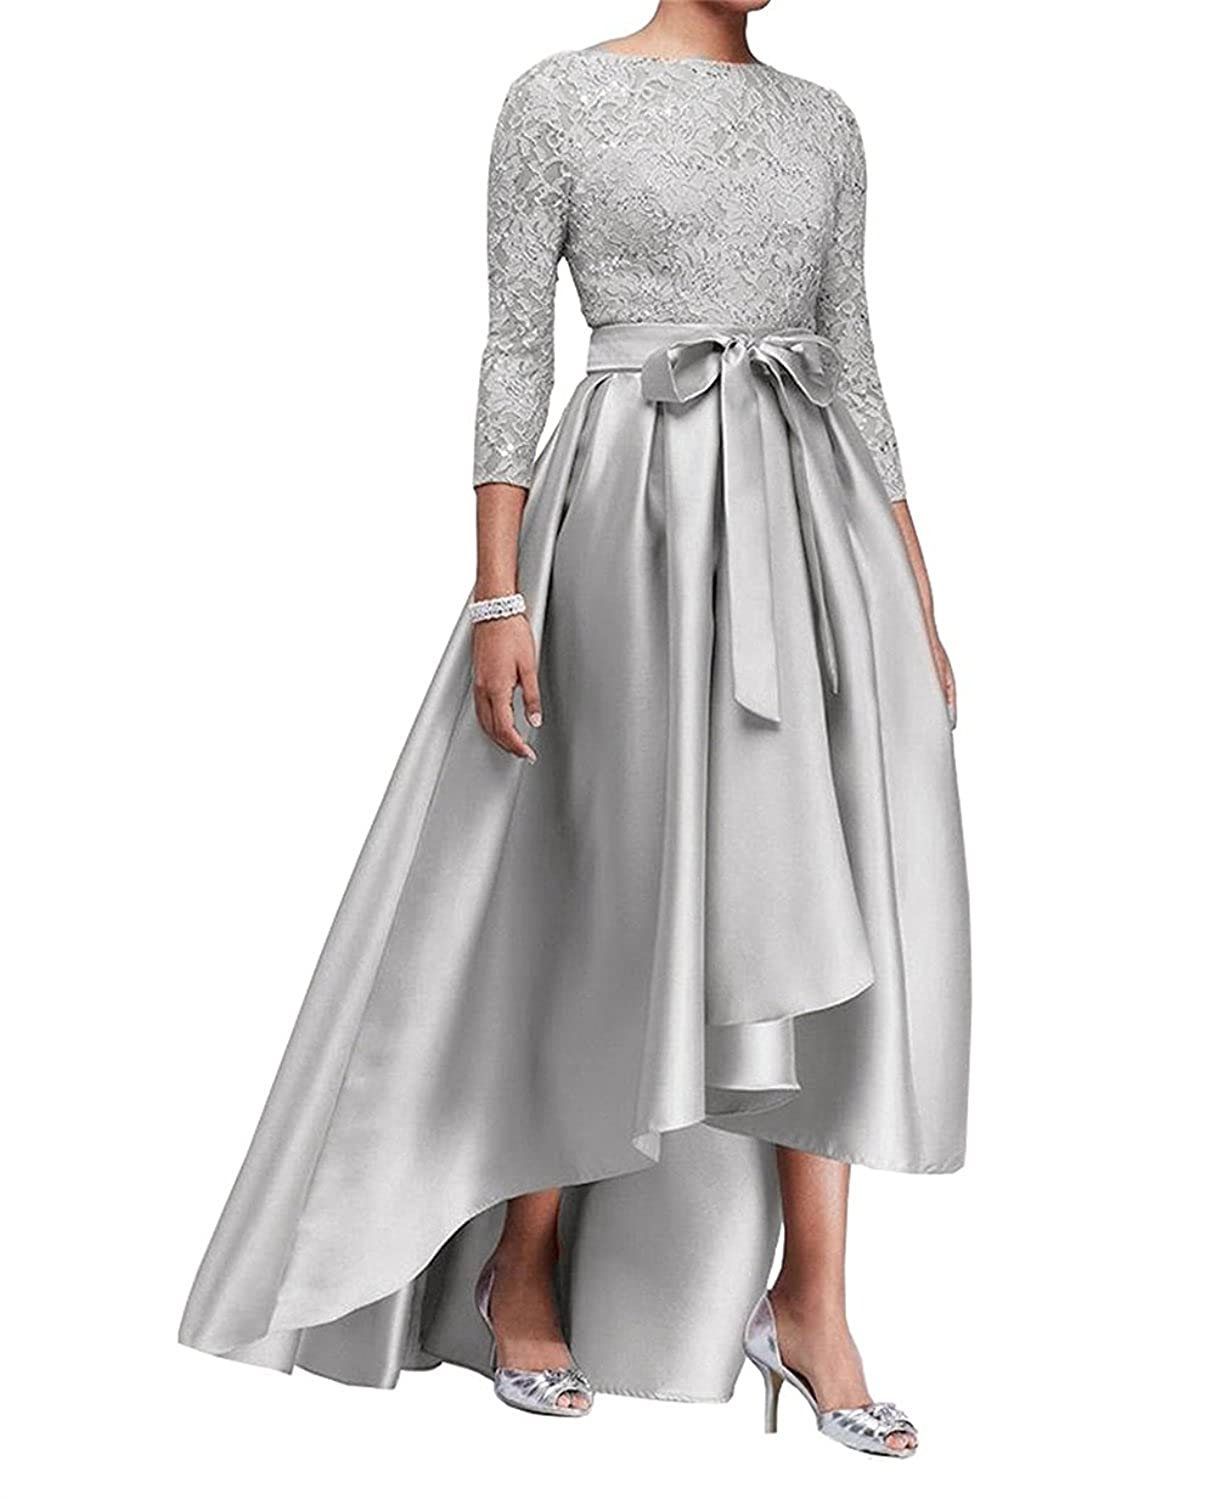 Women Champagne Mother of The Bride Dresses Hi-Low 3//4 Sleeve Formal Evening Dress